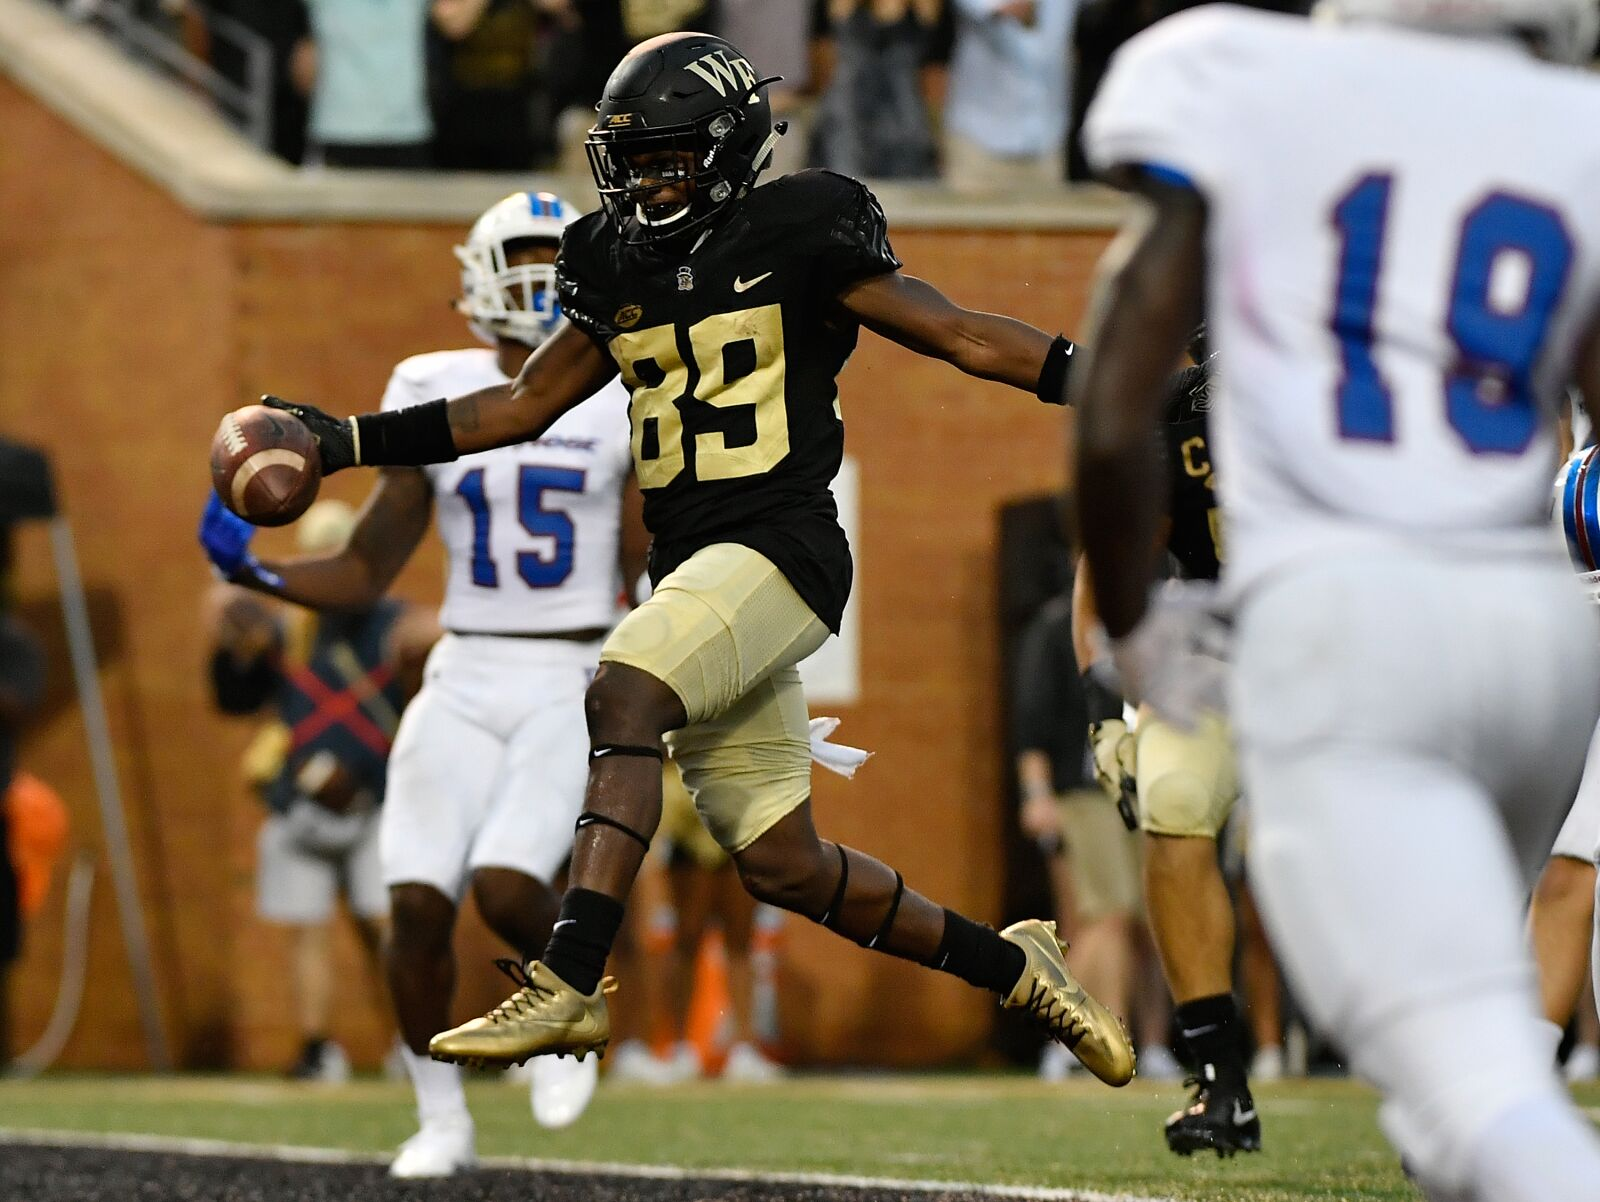 The Wake Forest Demon Deacons are the various sports teams of Wake Forest University Originally Wake Forests athletic teams were known as the Fighting Baptists